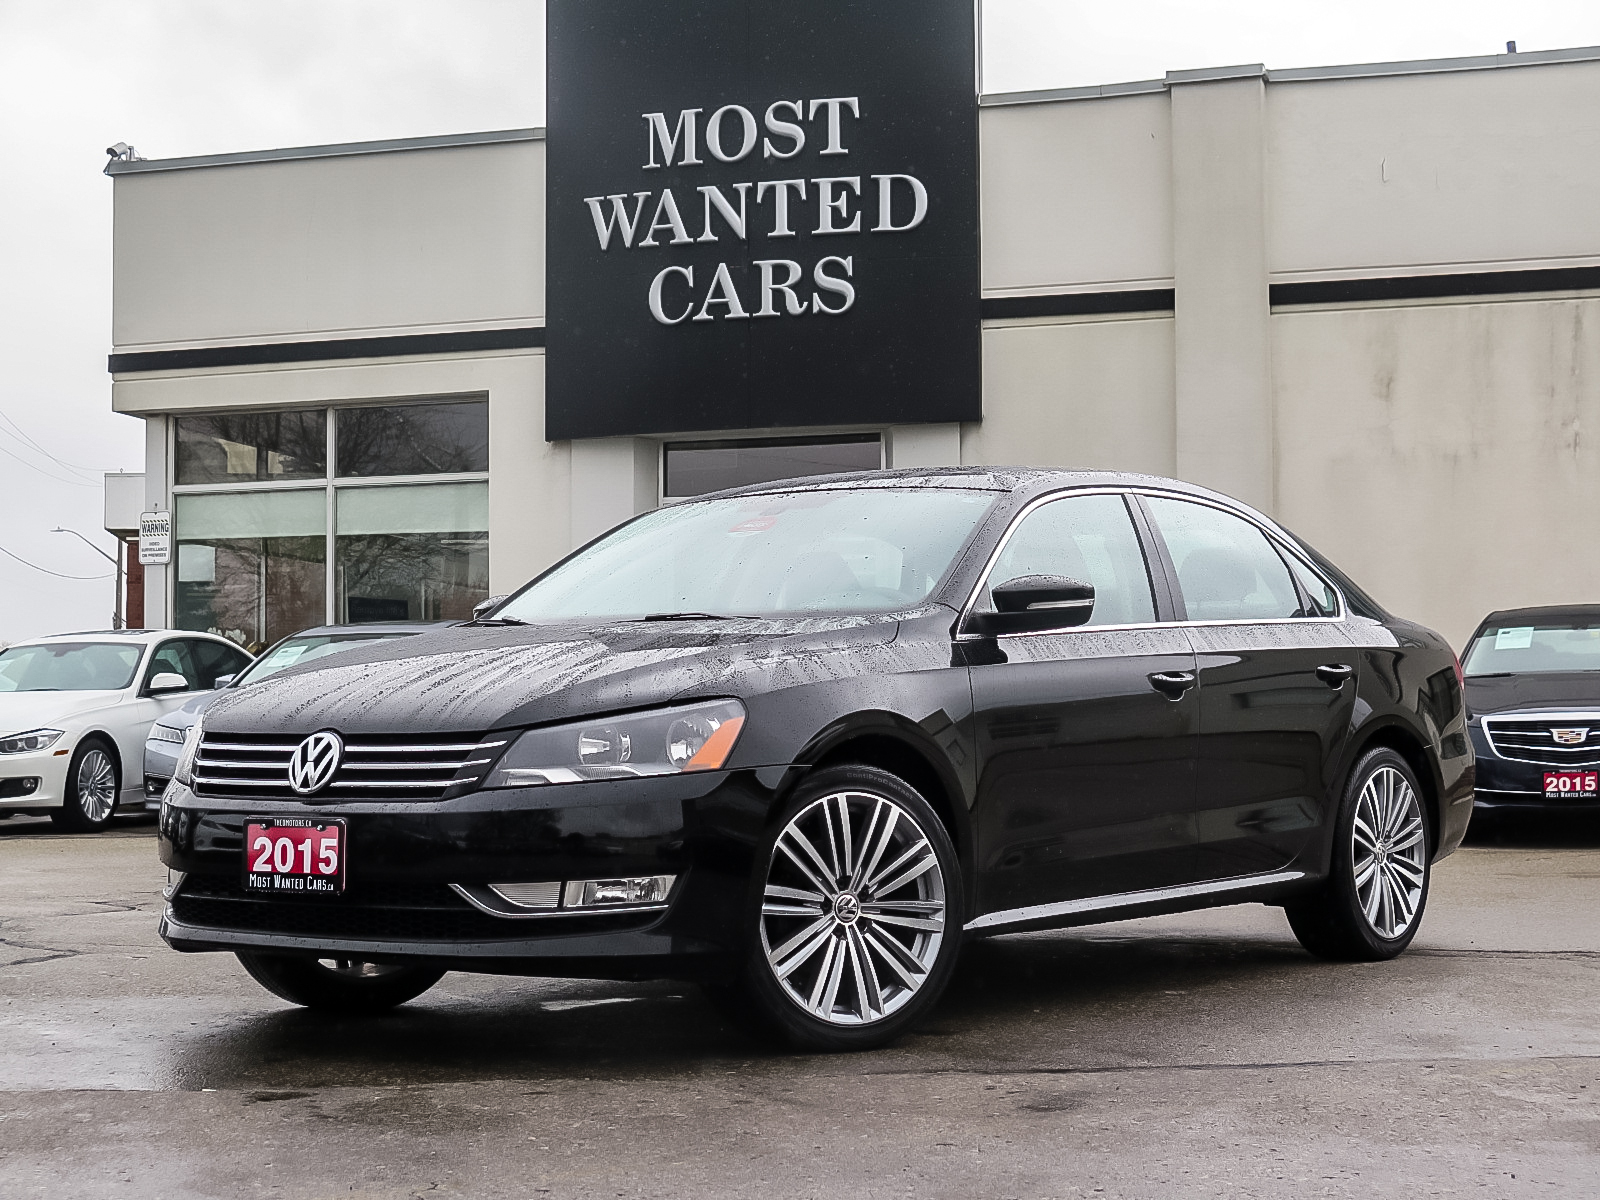 used 2015 Volkswagen Passat car, priced at $12,494